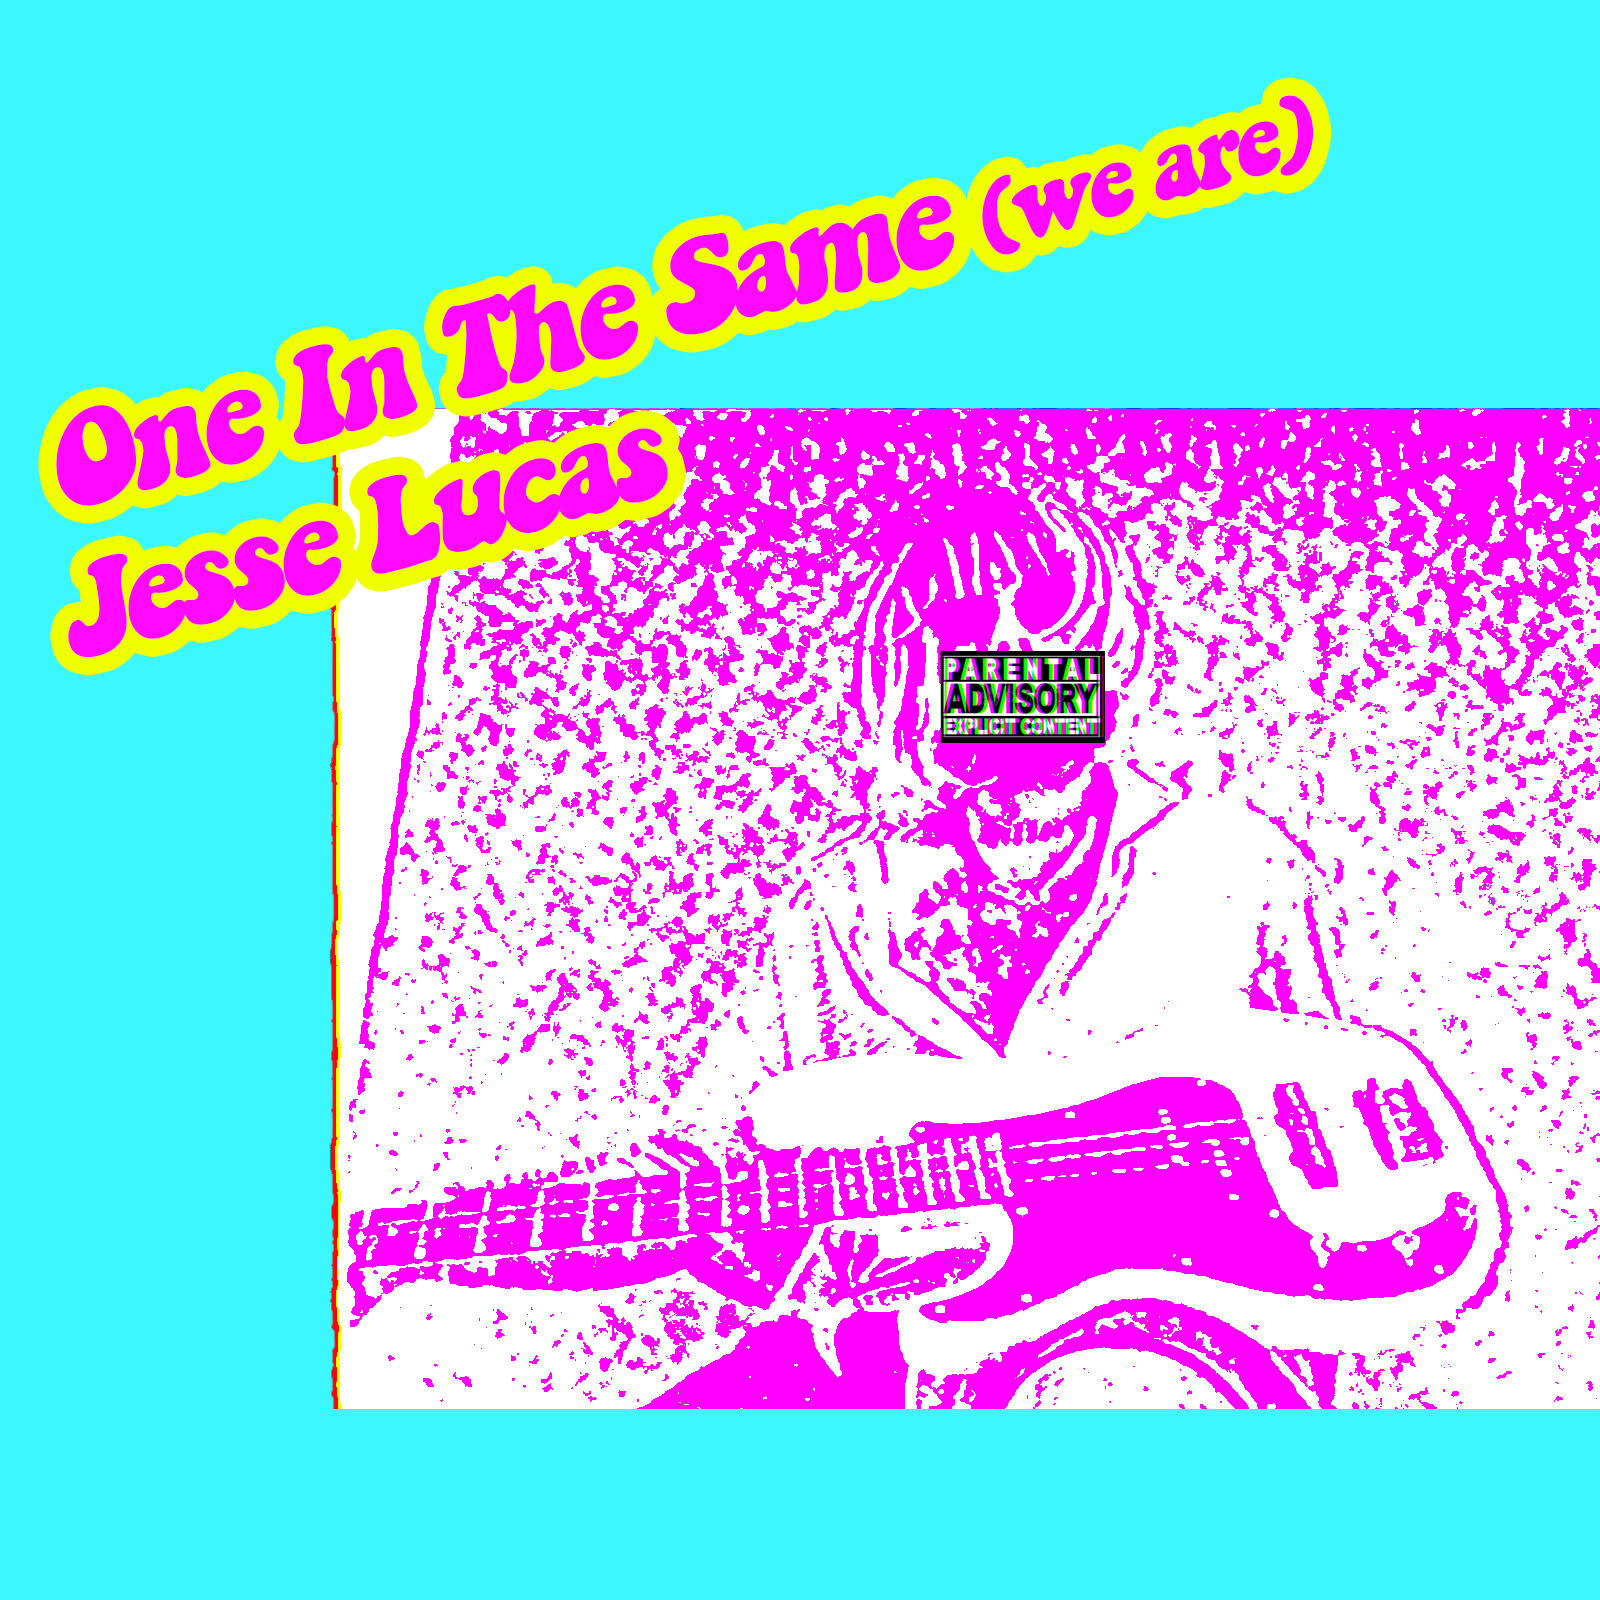 ONE IN THE SAME (WE ARE) – [Jesse Lucas]